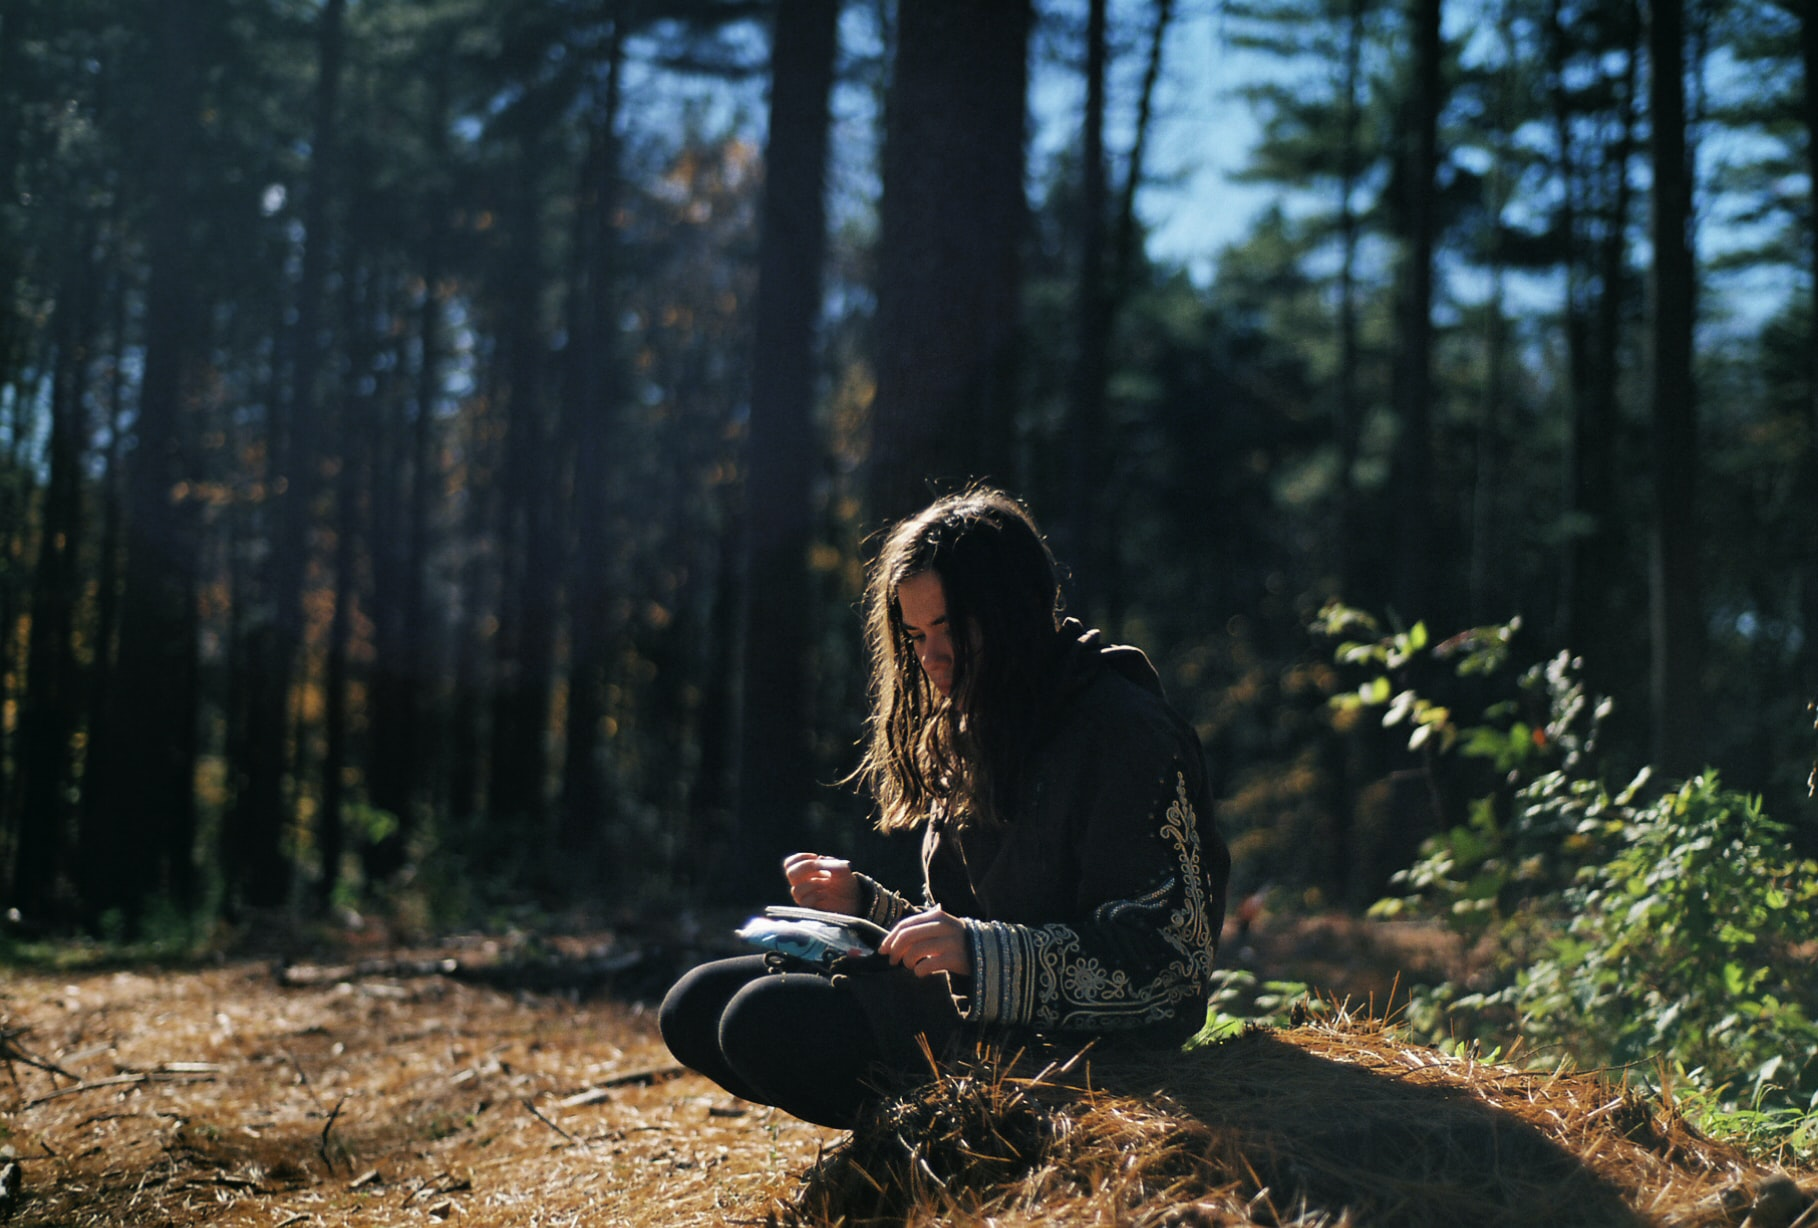 A pensive dark-haired girl crouching on the forest floor journaling